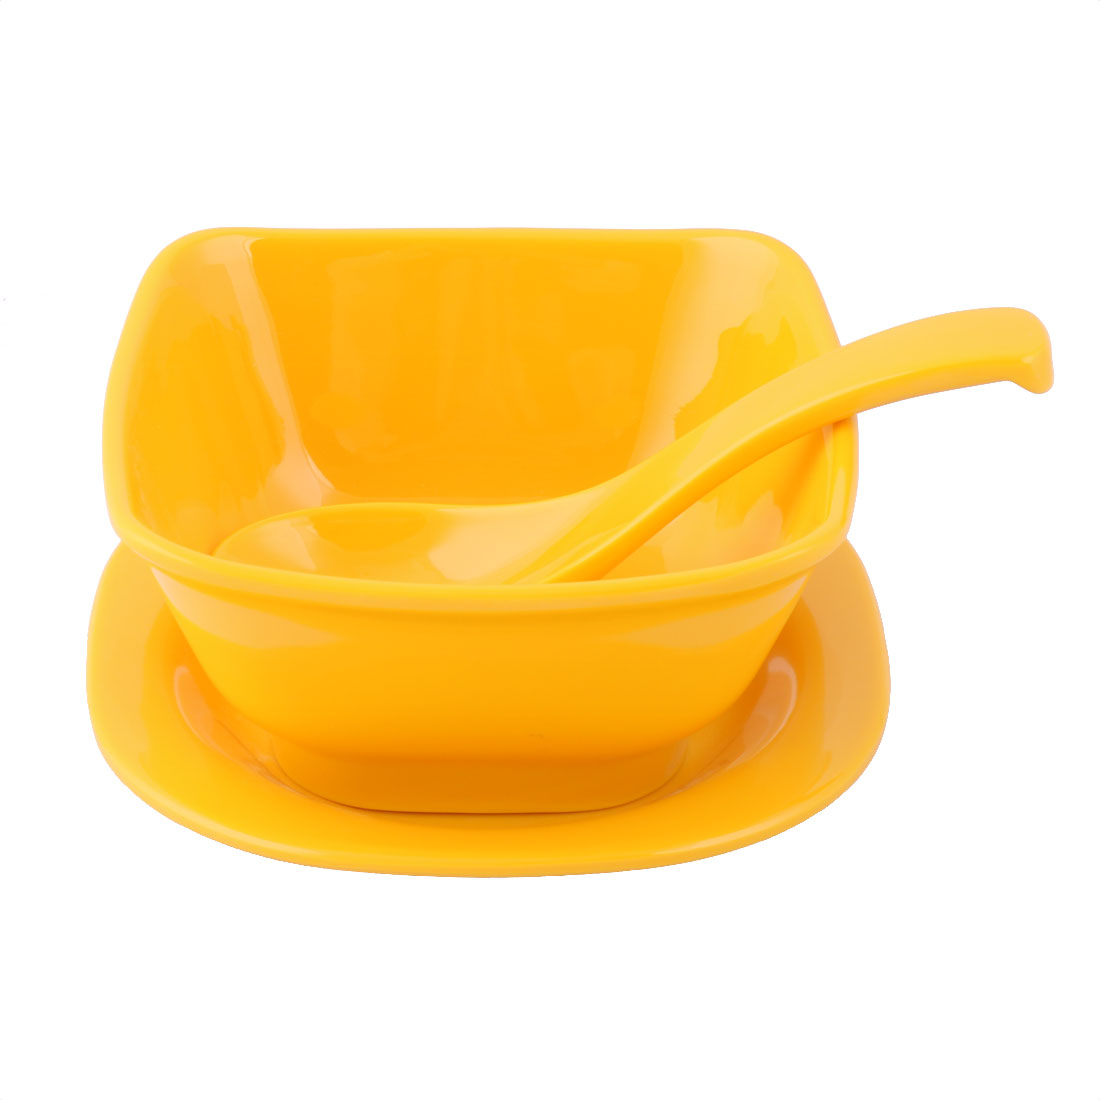 Home Kitchen Plastic Dinnerware Tableware Serving Spoon Bowl Plate Yellow 3 in 1